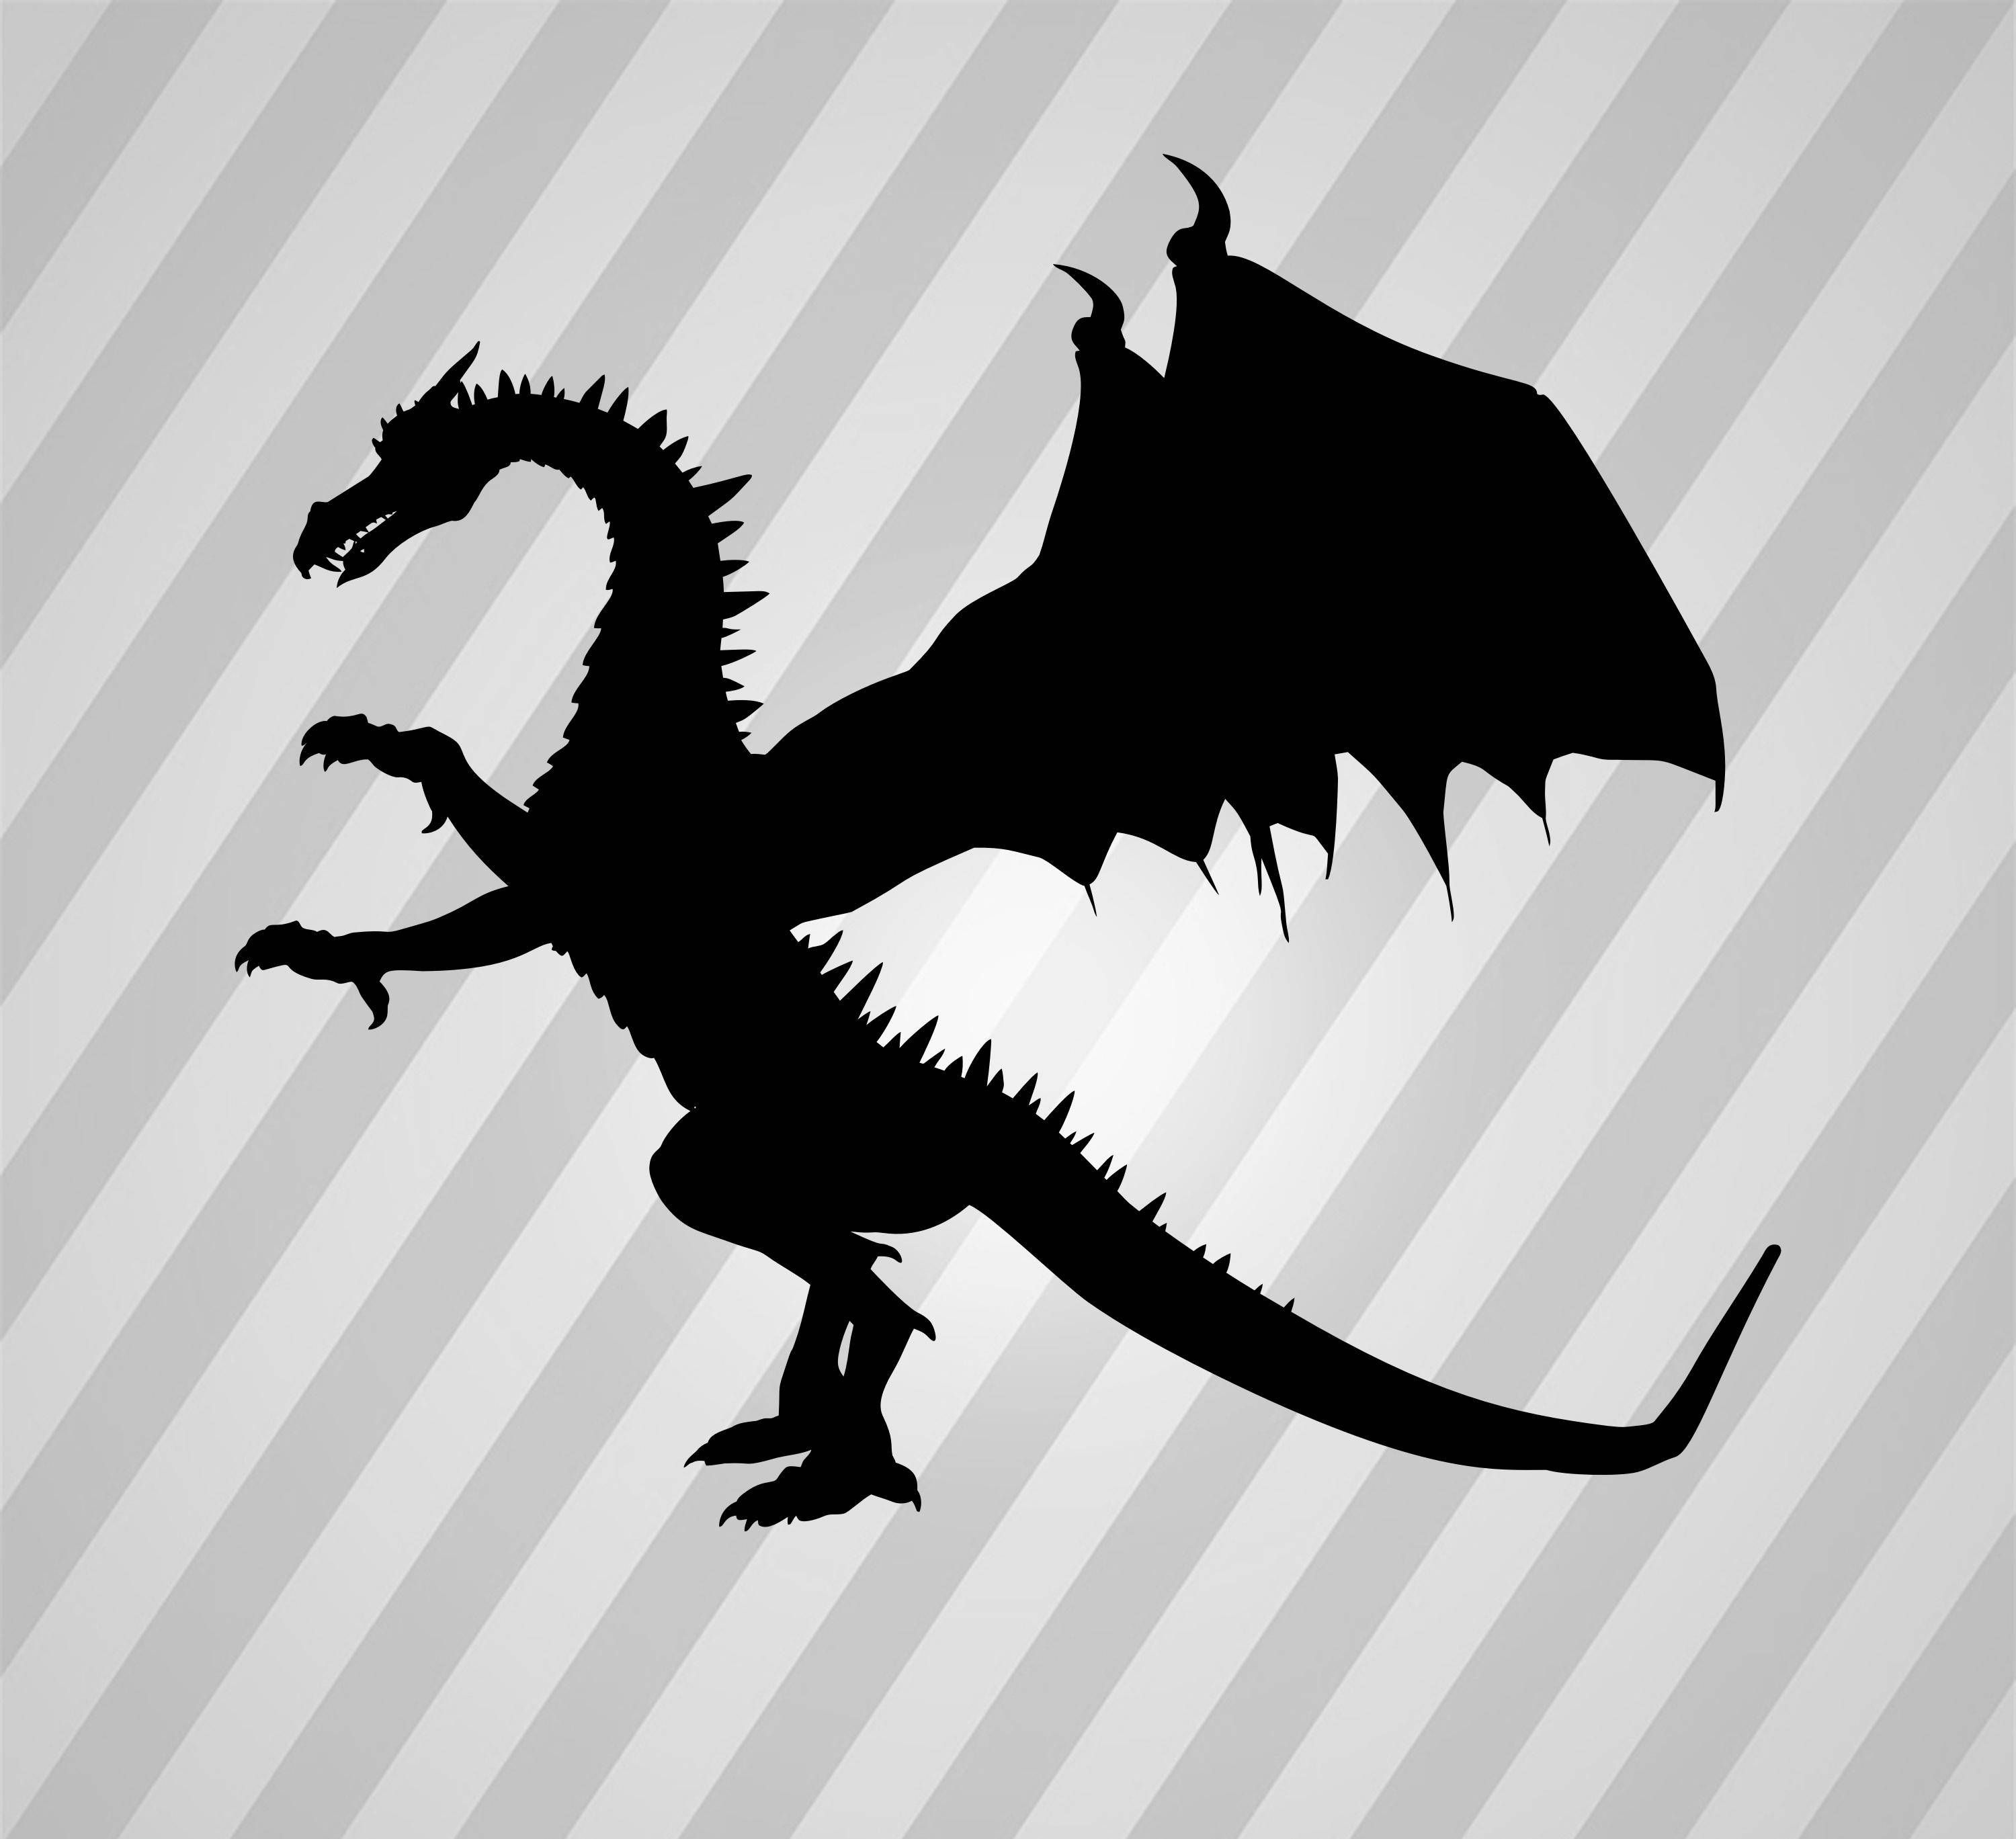 Pin by Tracie Spears on Silhouettes Dragon silhouette